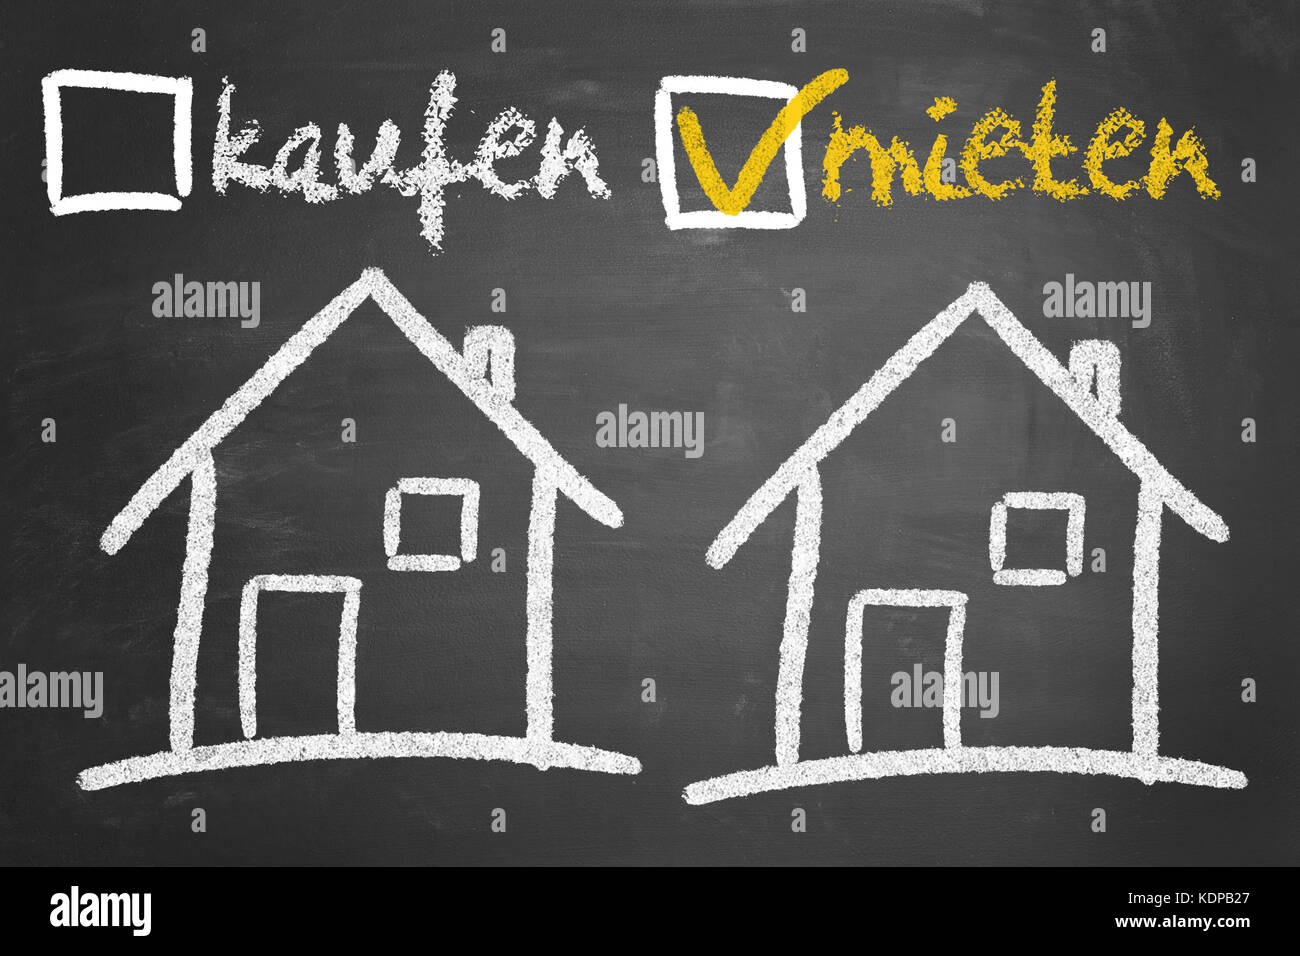 House or real state decision making concept between kaufen oder mieten (buying or renting) - Stock Image